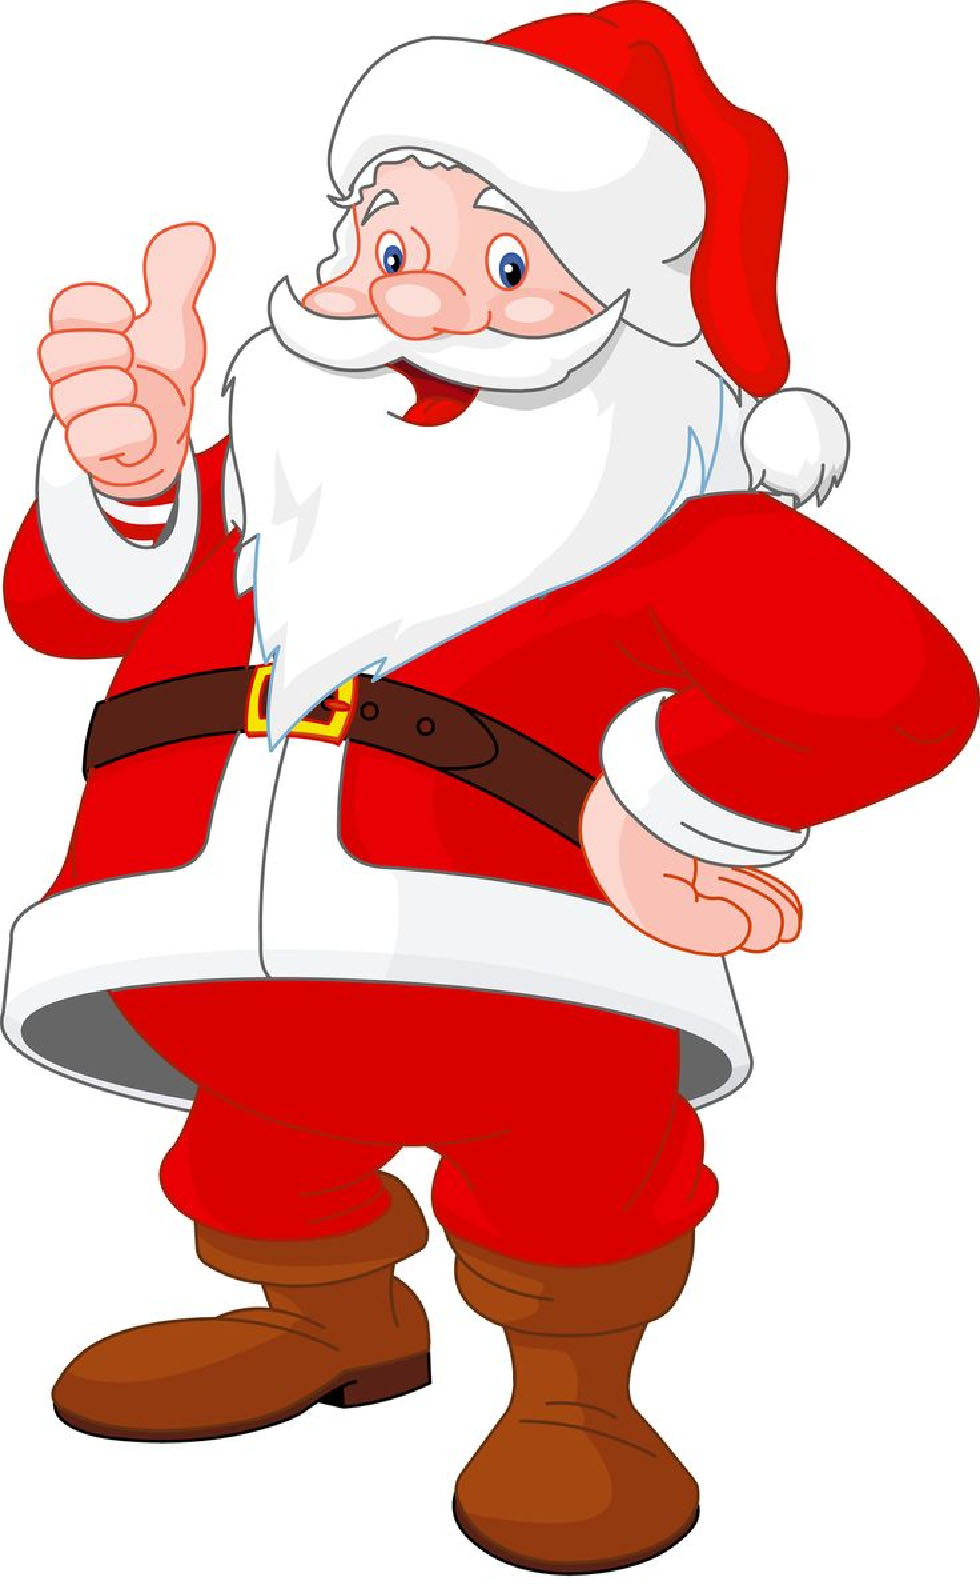 [CCPL] PRESCHOOL STORYTIME – THEME: Santa's Coming to Town (Santa will be coming) @ Carroll County Public Library